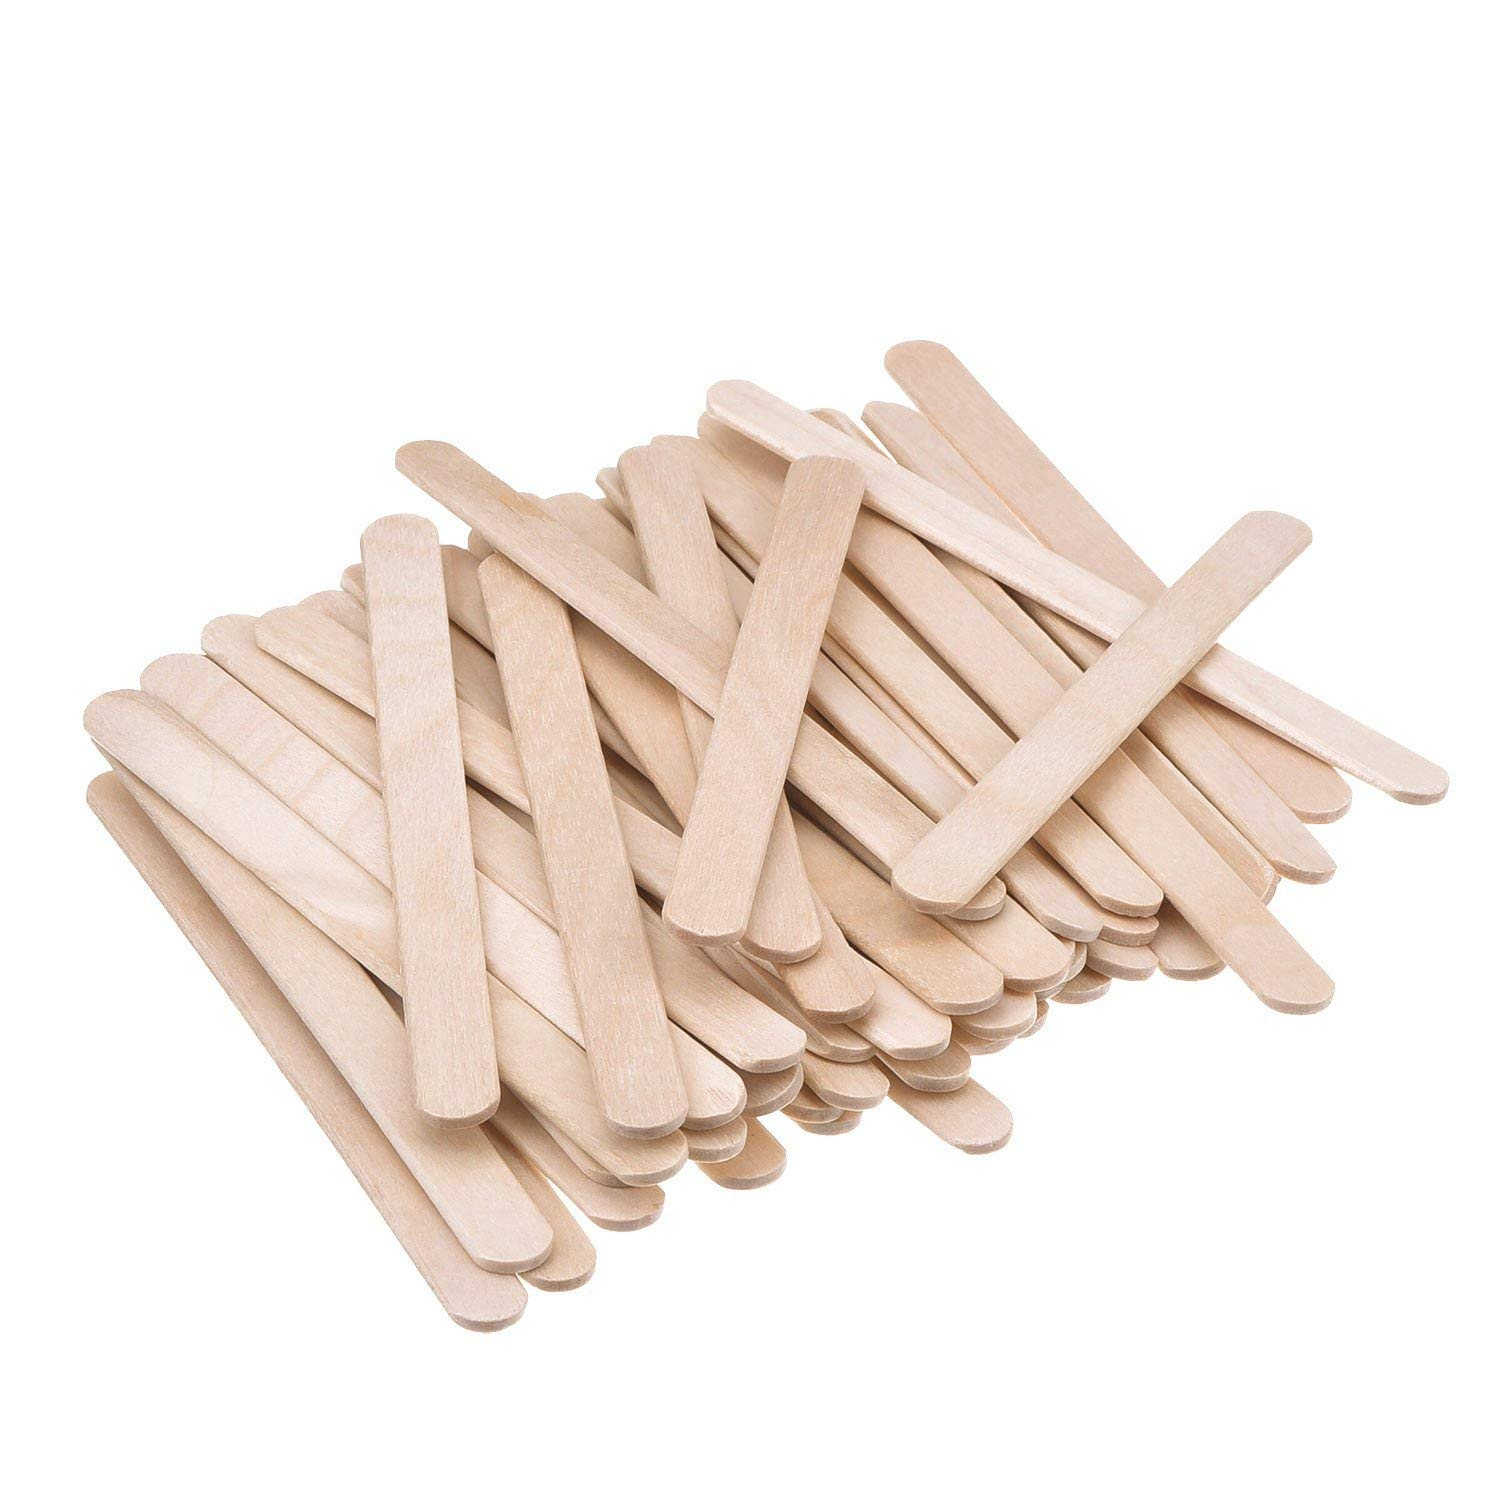 Natural Wood Popsicle Sticks,Wooden Ice Cream Sticks Treat Sticks Freezer Pop Sticks,Natural Wood Craft Sticks,Great for DIY Crafts Homemade Treats Dessert Making KINGLAKE 200 Pcs 4.5 Inch